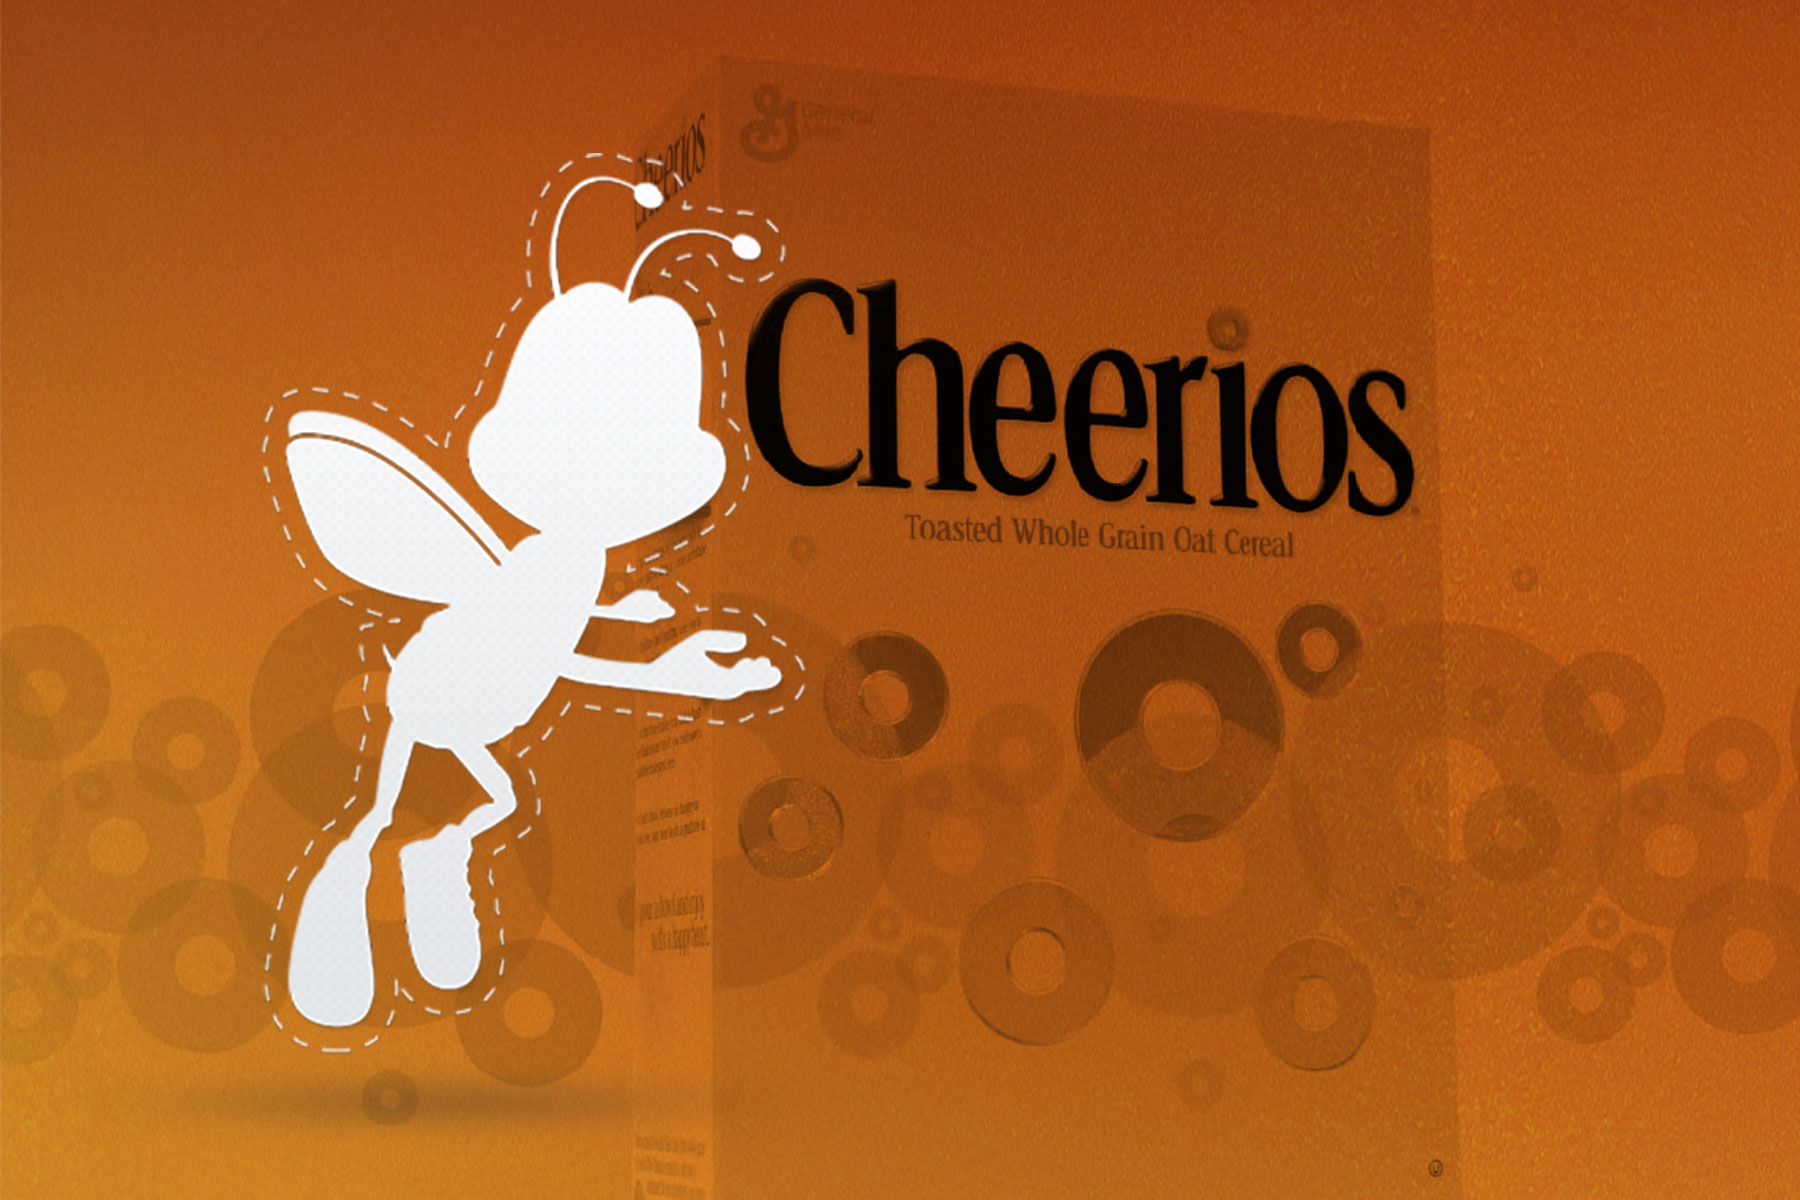 As Bee Populations Decline, Cheerios' Buzz the Bee Disappears from Boxes